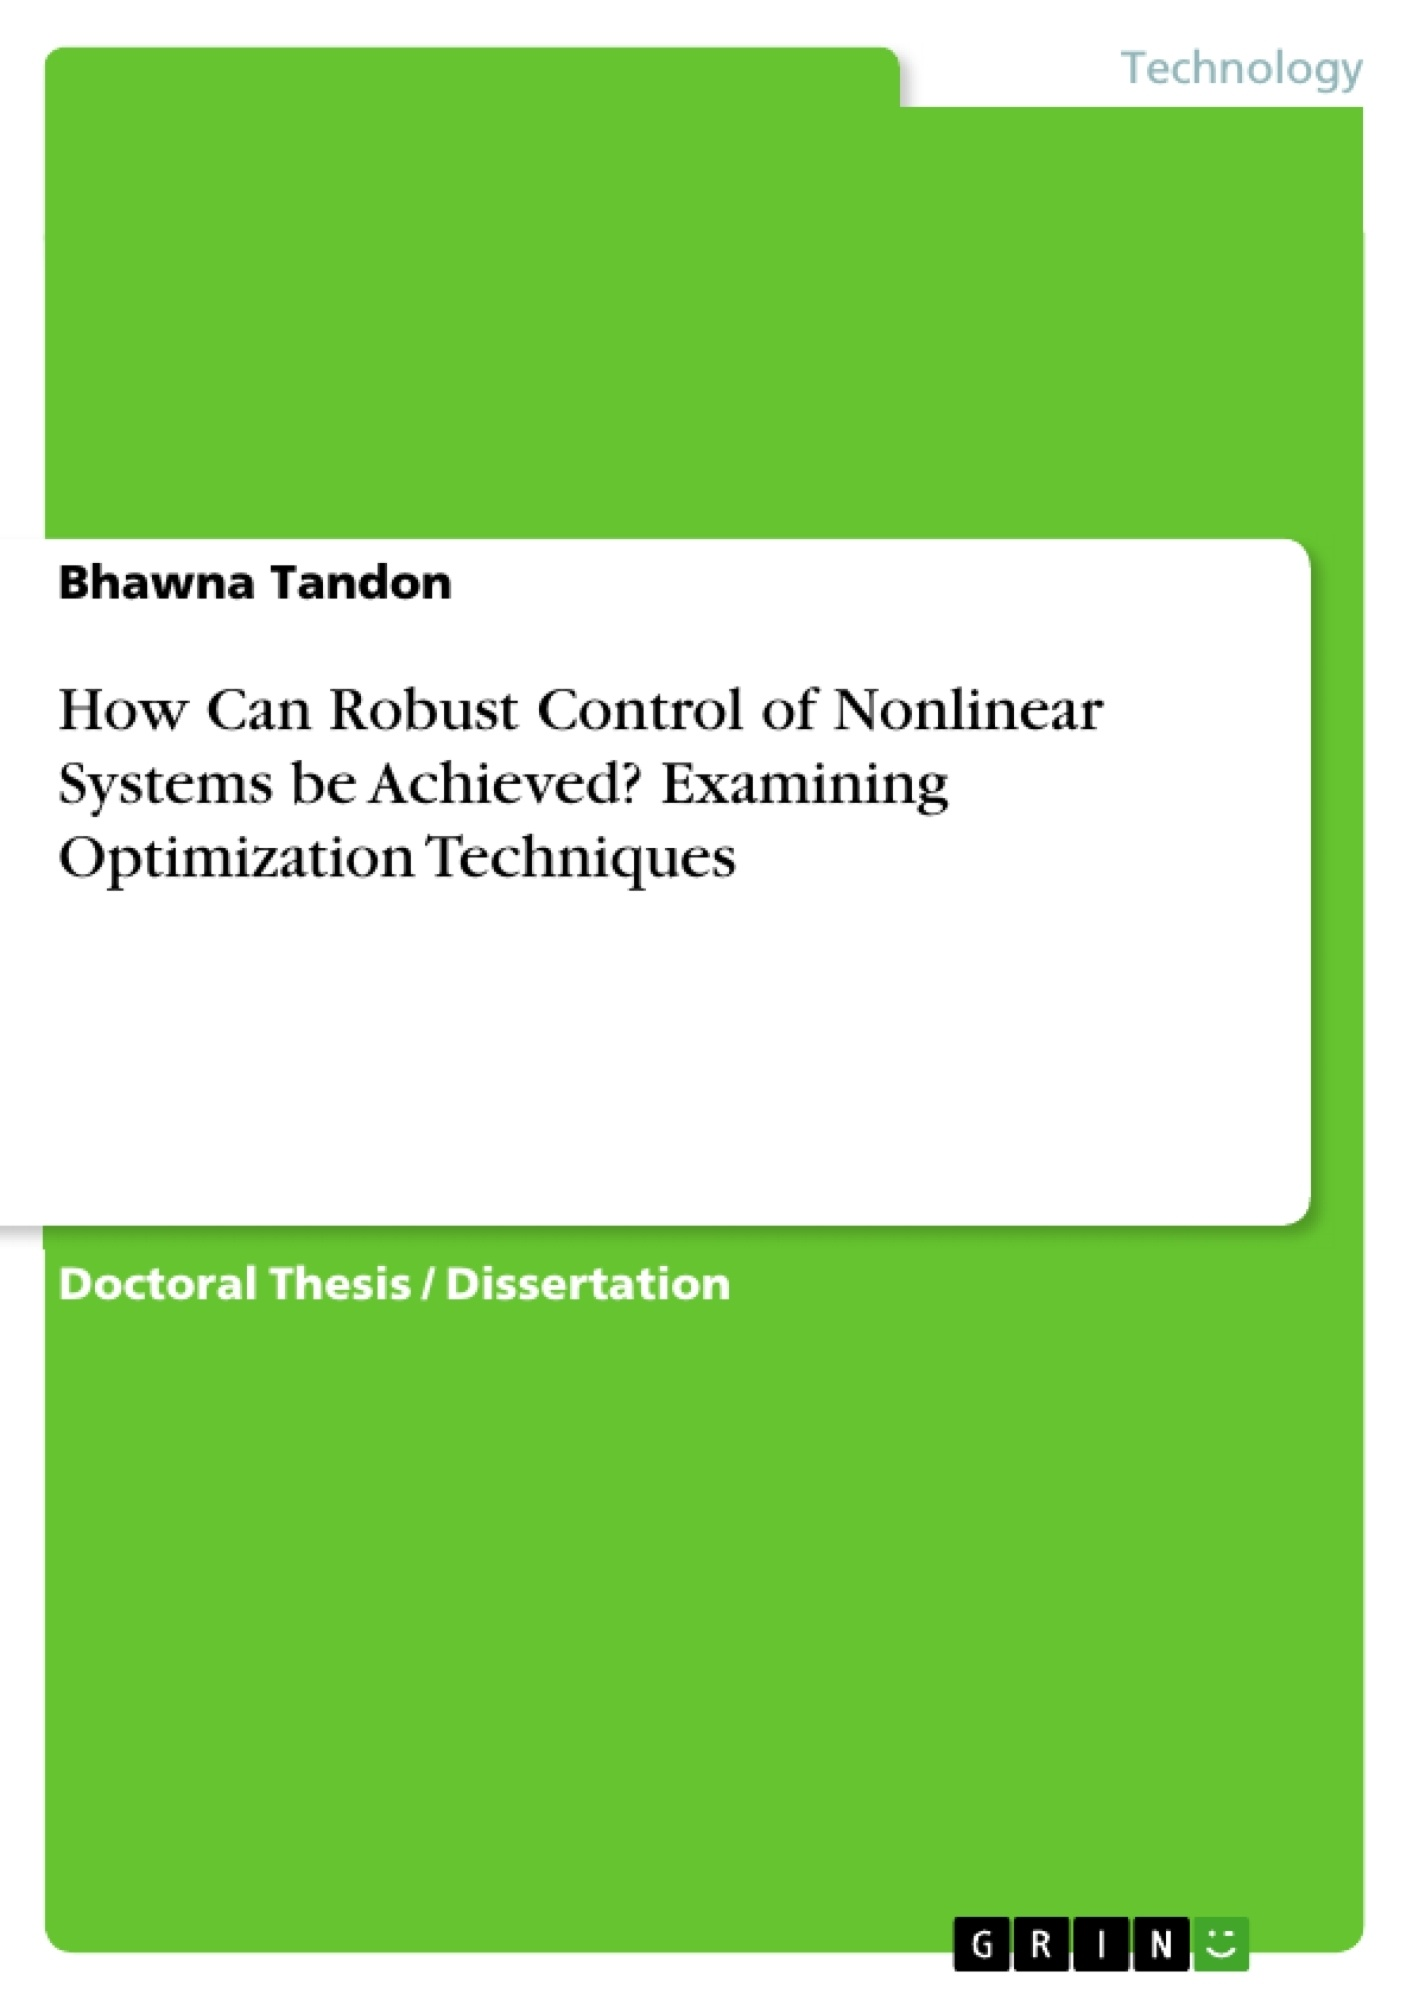 Title: How Can Robust Control of Nonlinear Systems be Achieved? Examining Optimization Techniques